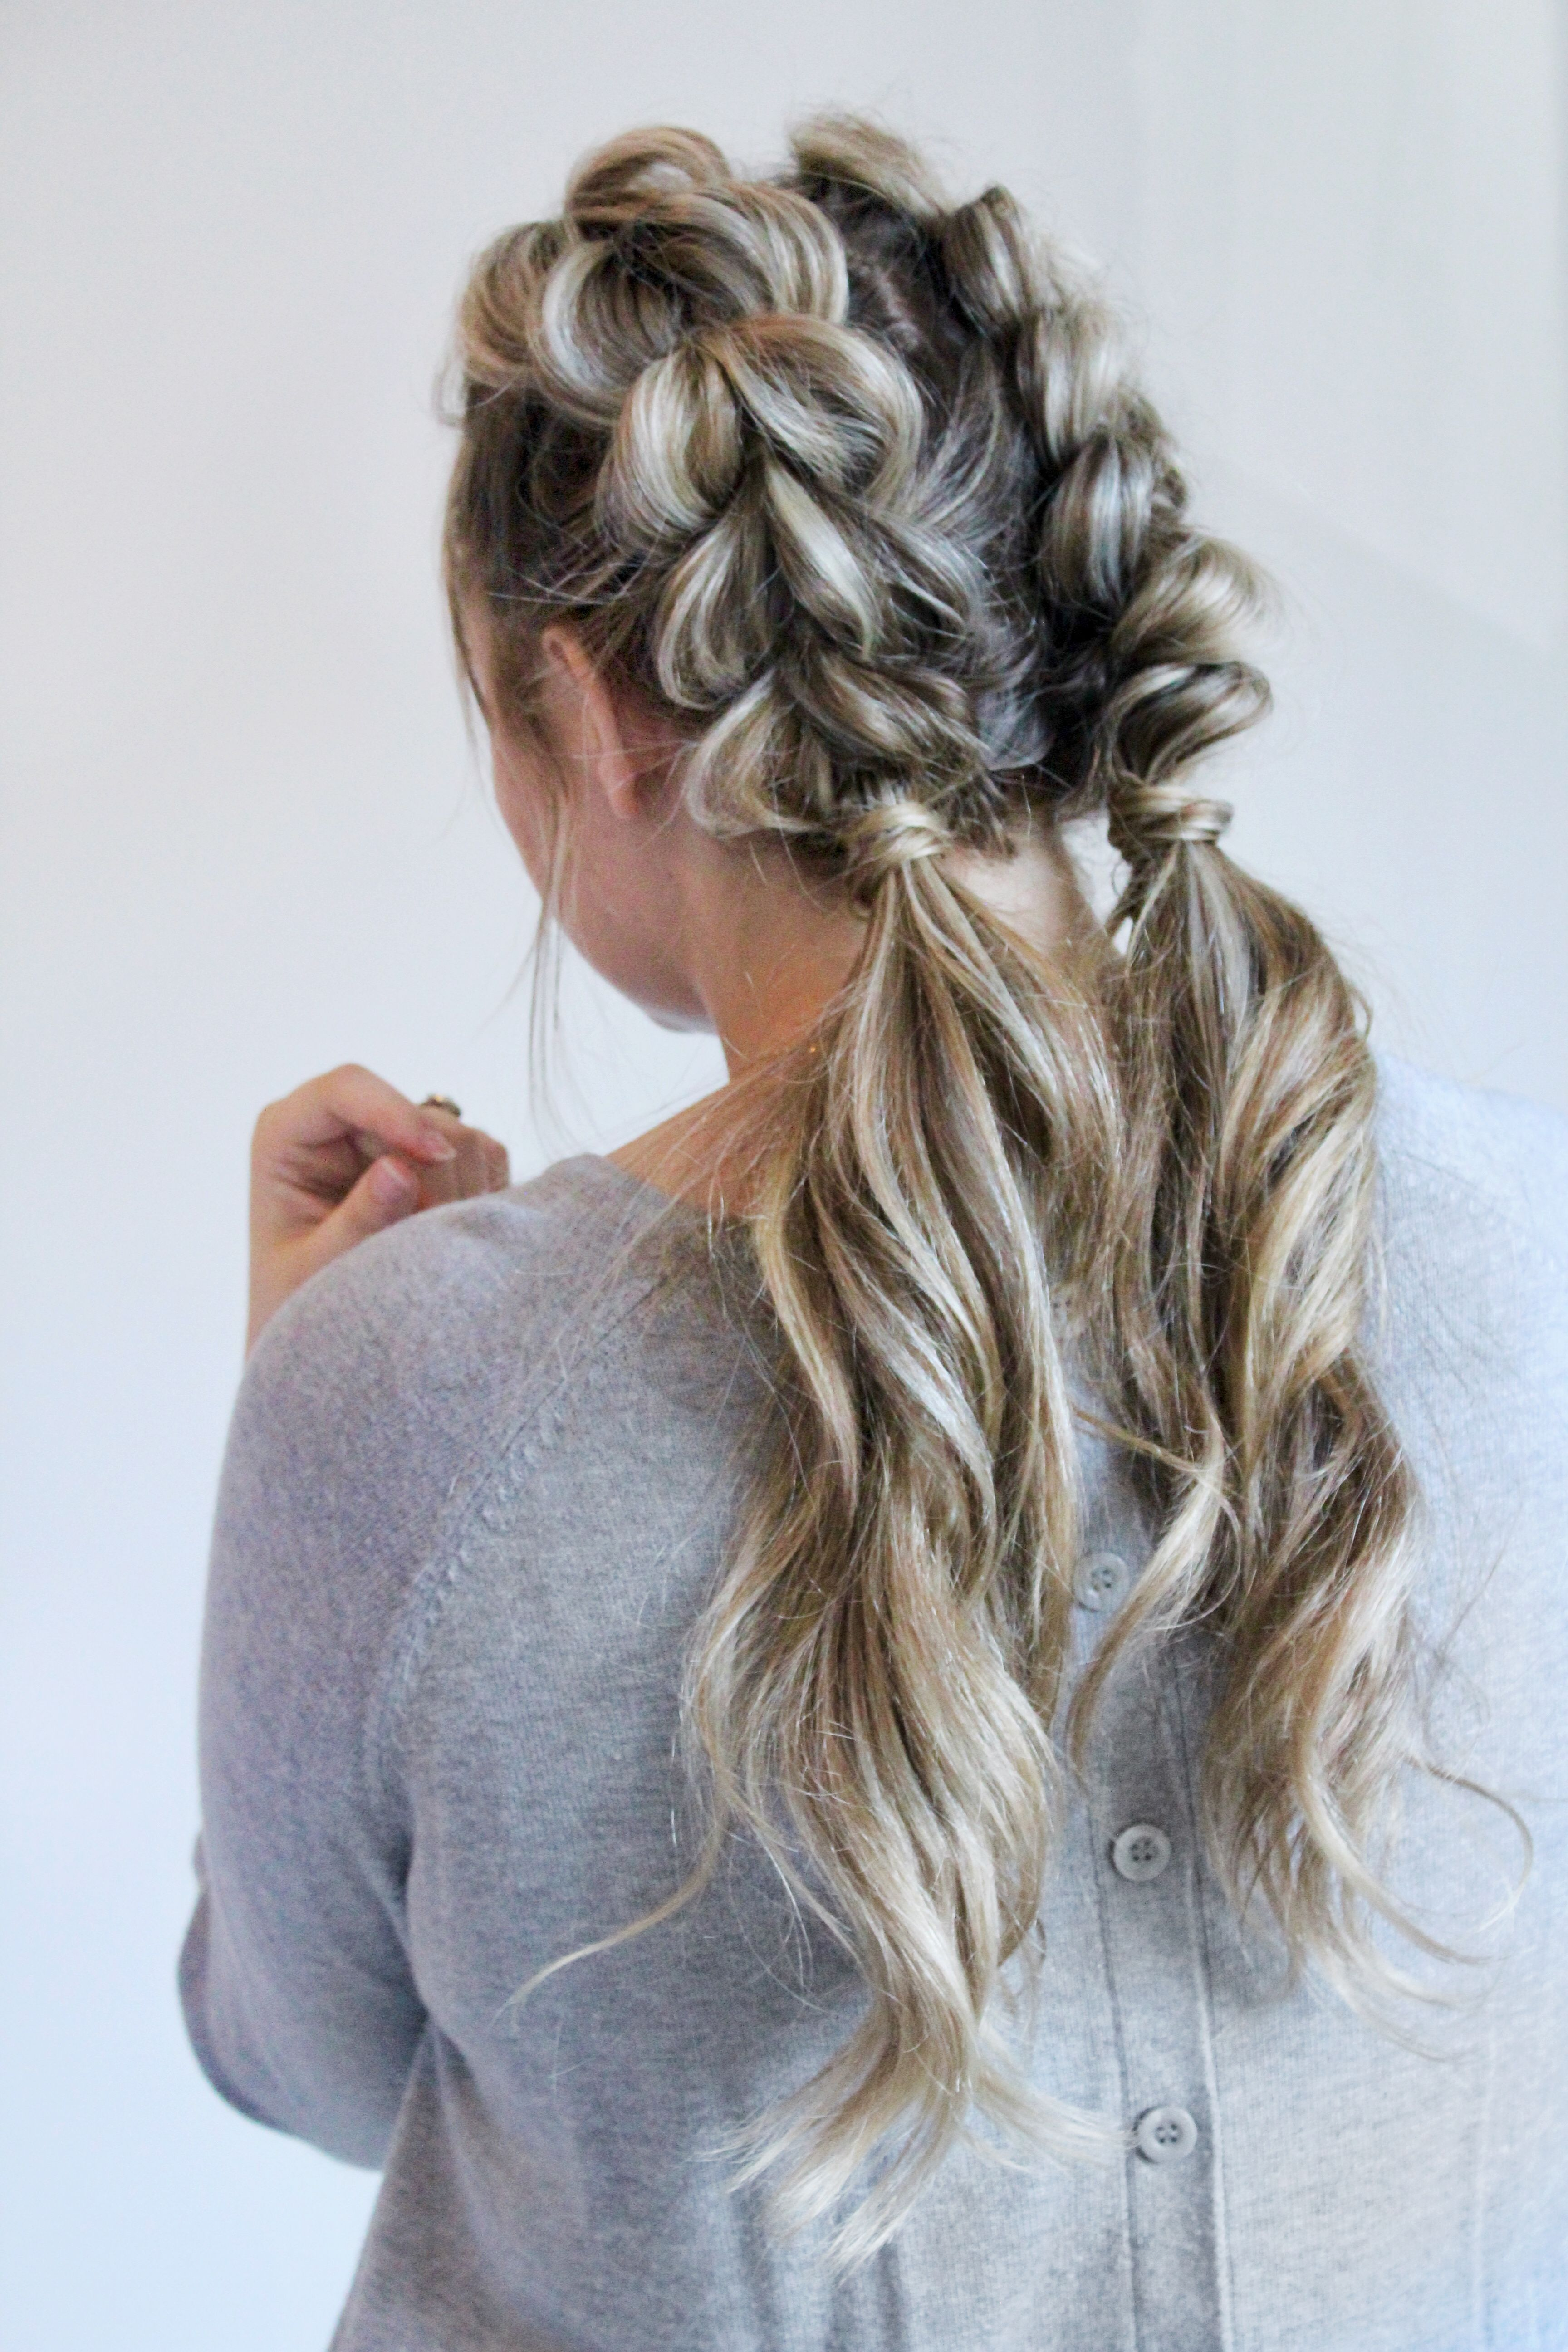 jumbo pull through braid pigtails tutorial | beauty products